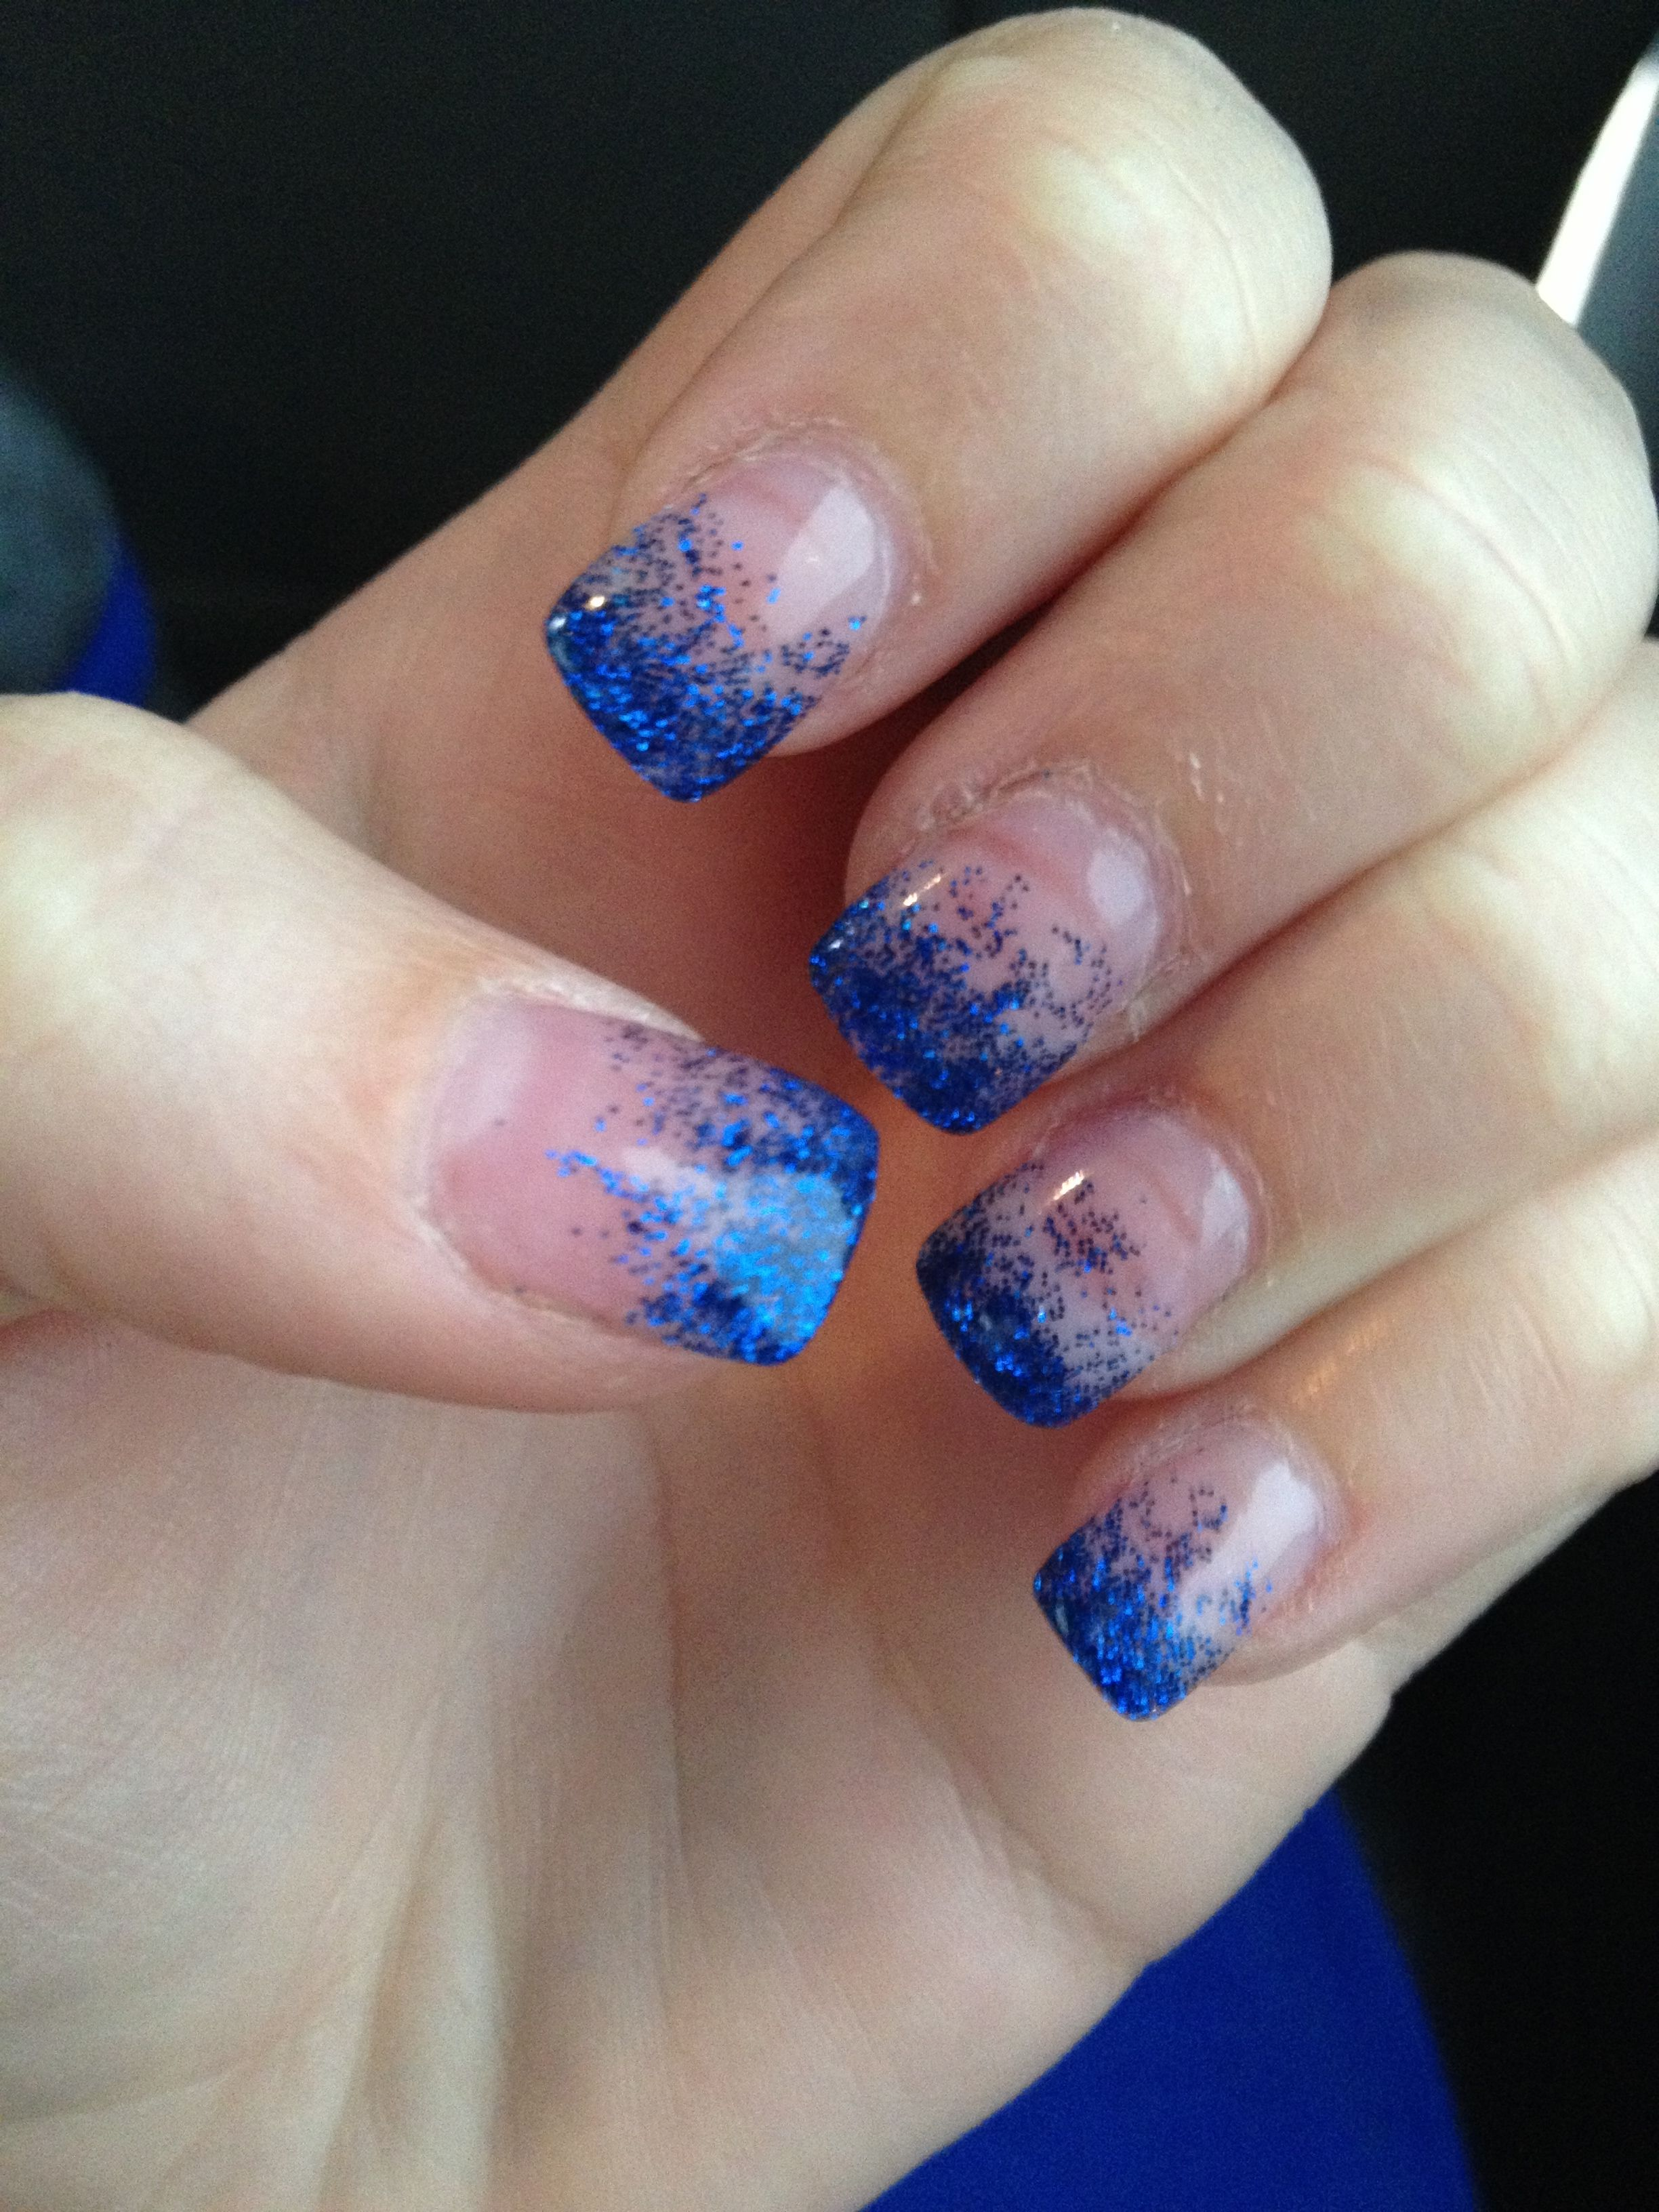 Pin By Alexa Murphy On Awesomeness Blue Prom Nails Prom Nails Royal Blue Nails